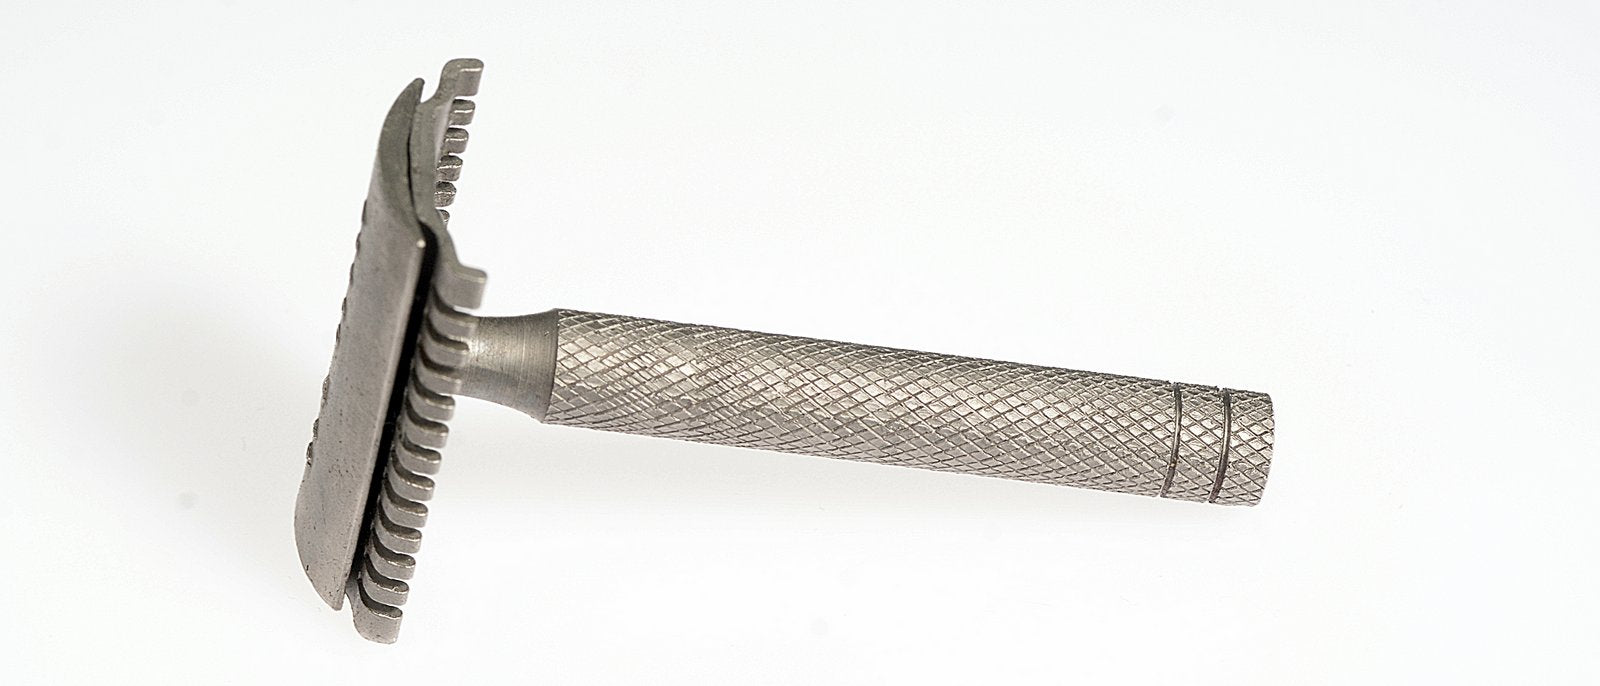 Original Unissued and Unused Second World War British Army Safety Razor